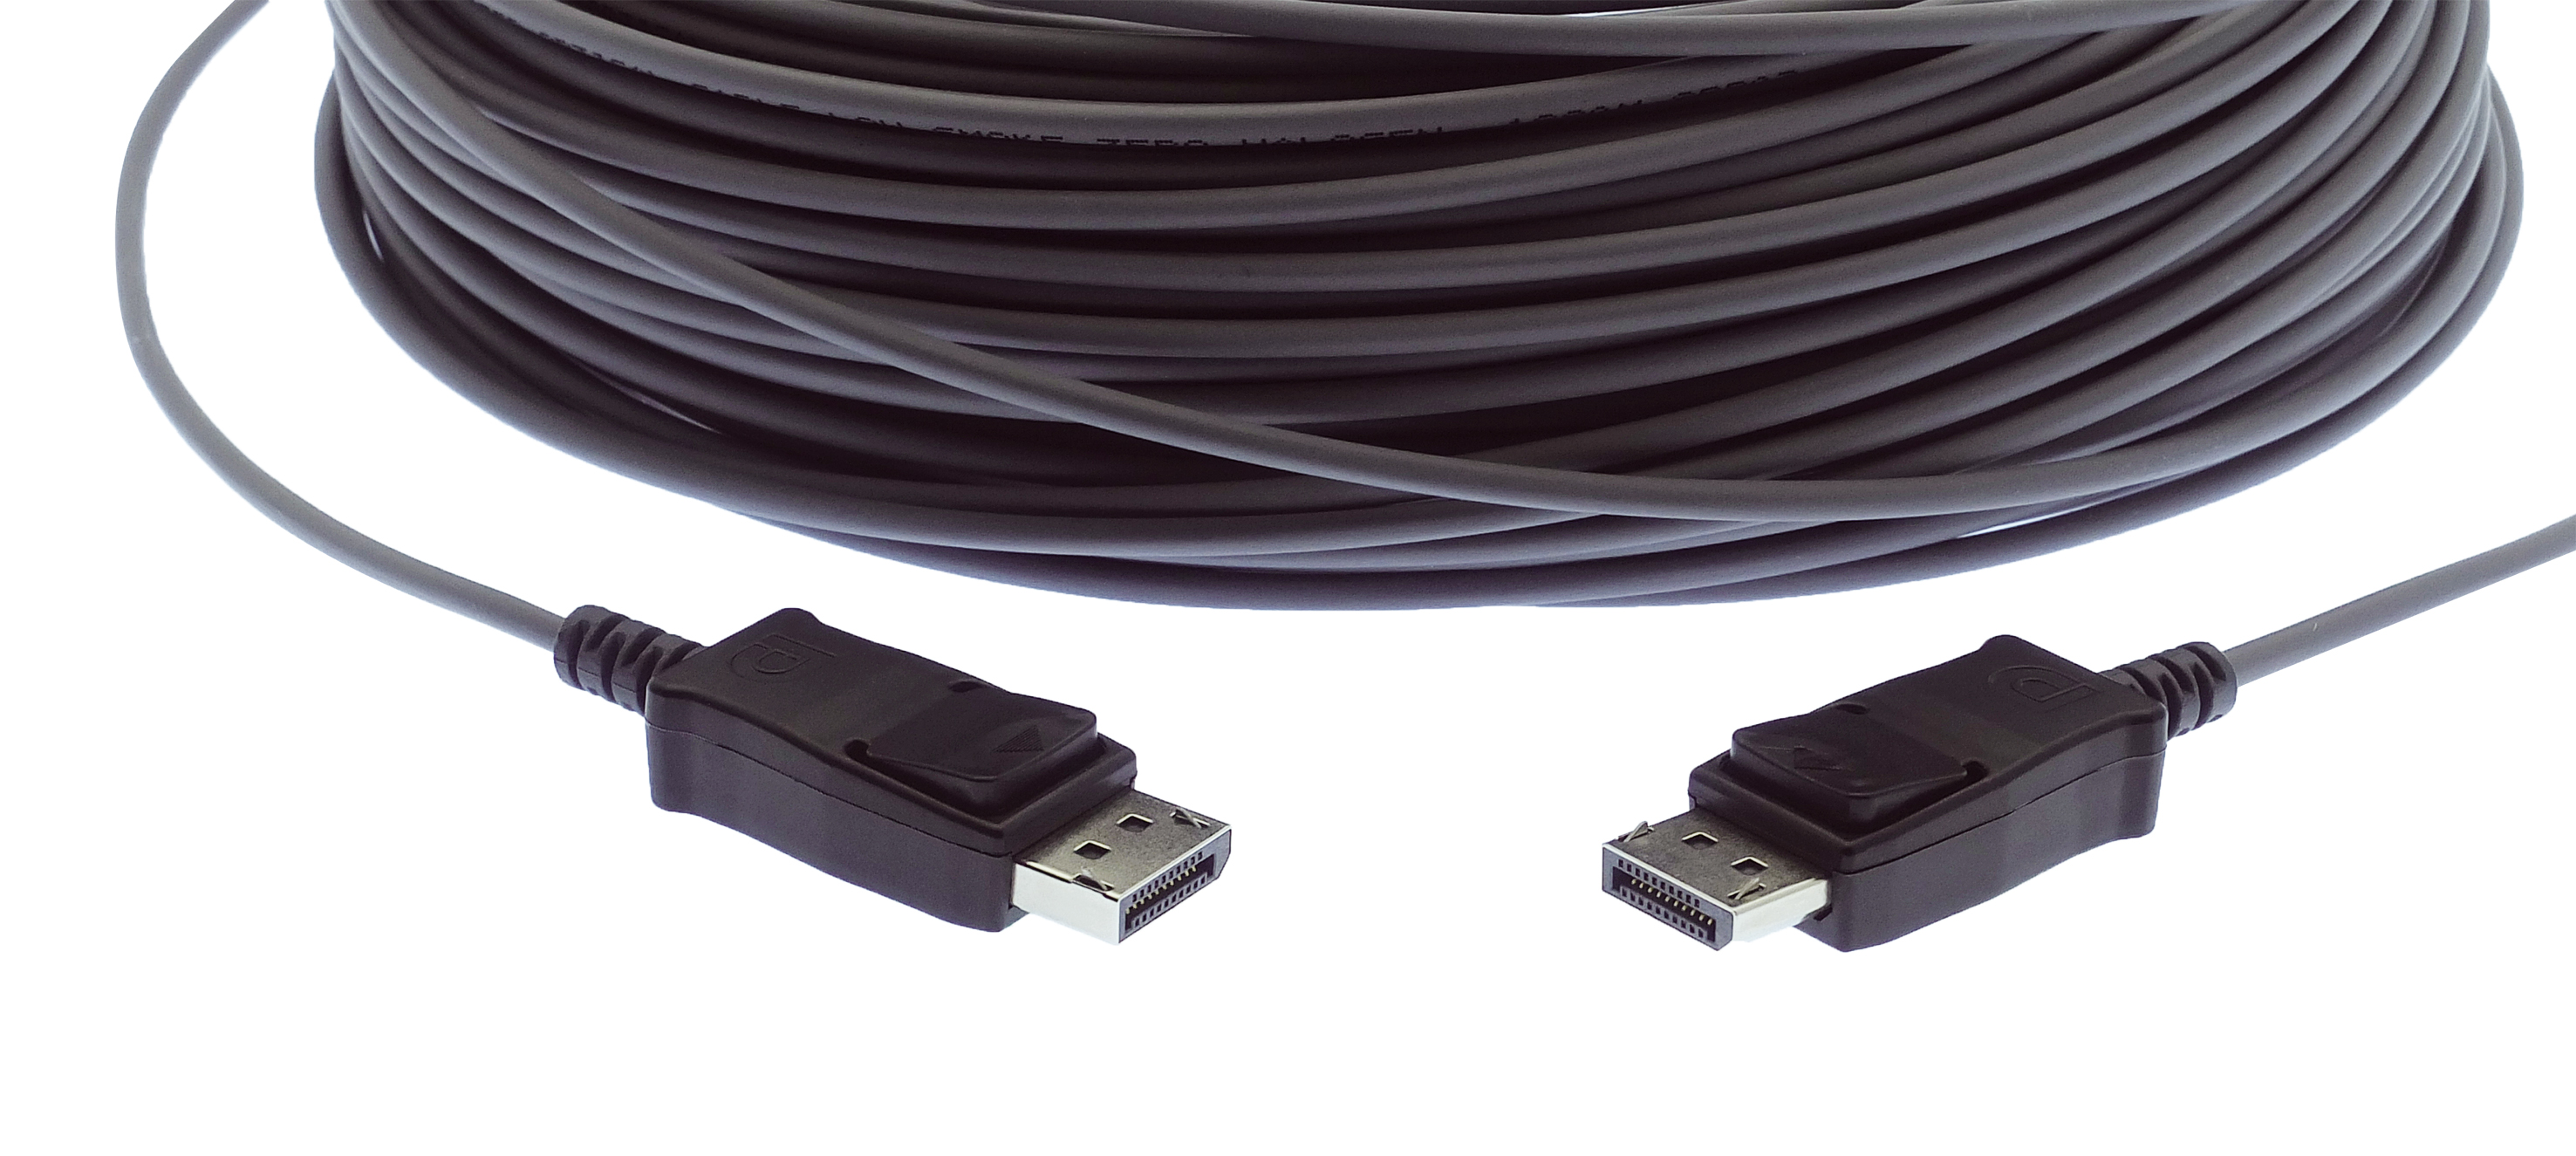 DisplayPort 1.2a Hybridkabel